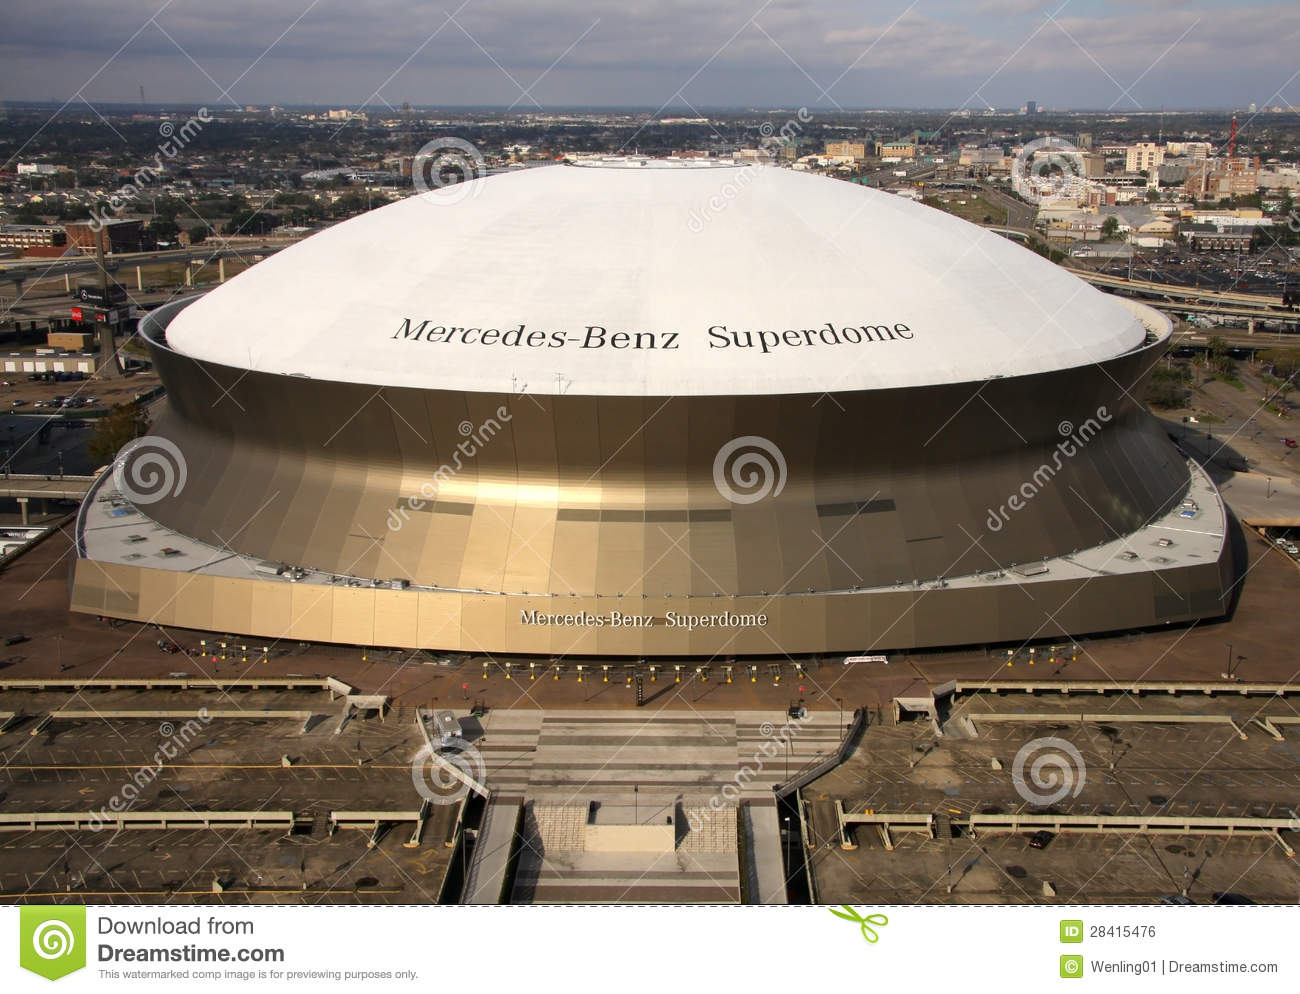 Superdome in New Orleans